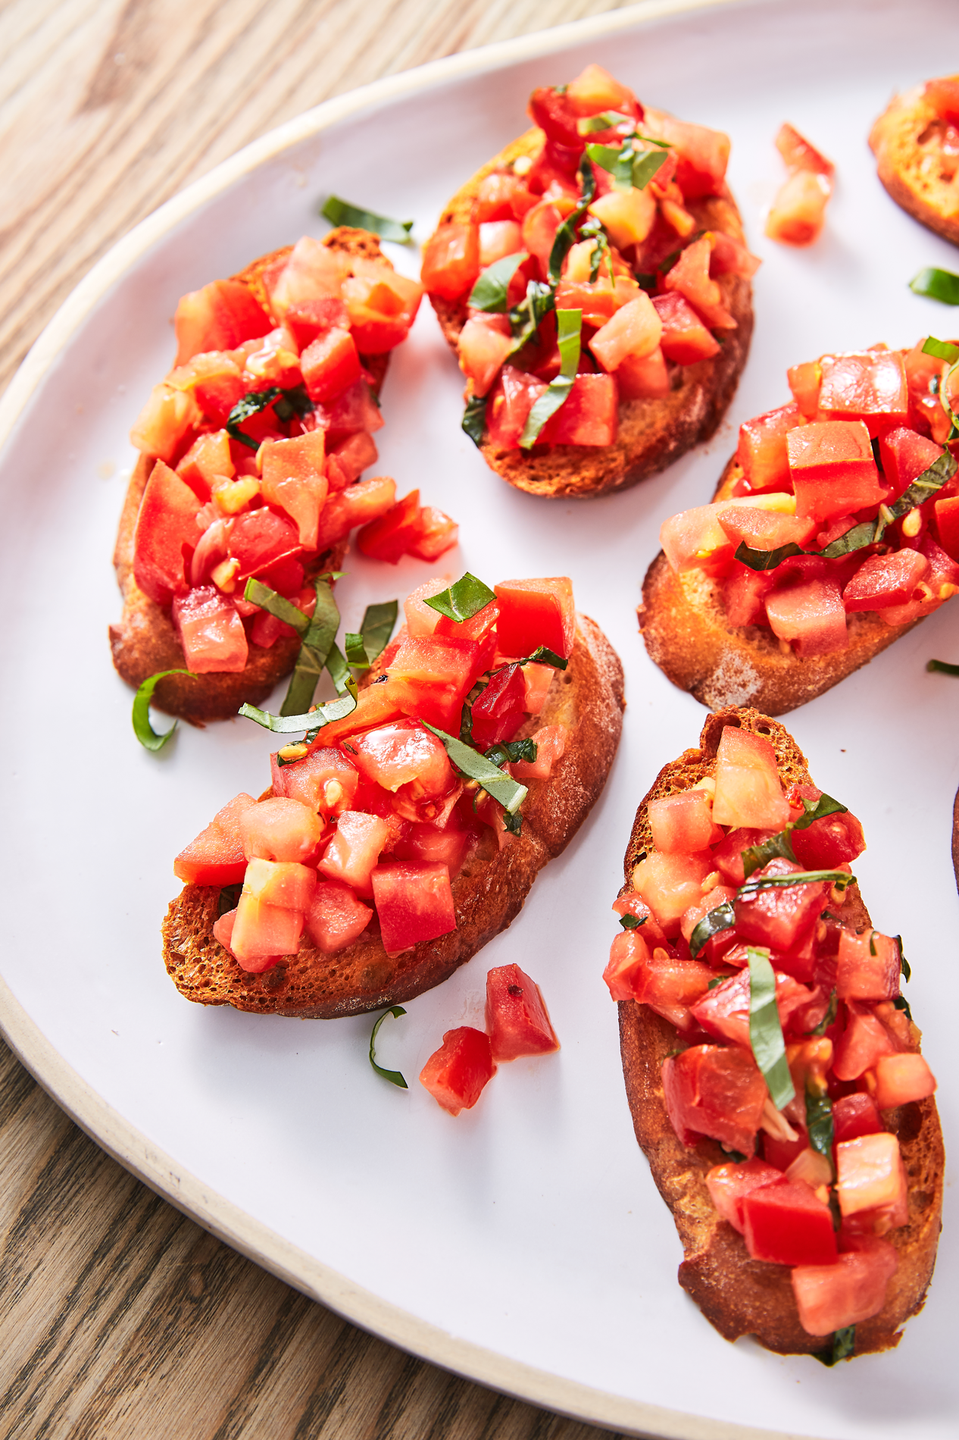 """<p>Nothing screams summer quite like bruschetta.</p><p>Get the recipe from <a href=""""https://www.delish.com/cooking/recipe-ideas/a27409128/best-bruschetta-tomato-recipe/"""" rel=""""nofollow noopener"""" target=""""_blank"""" data-ylk=""""slk:Delish"""" class=""""link rapid-noclick-resp"""">Delish</a>.</p>"""